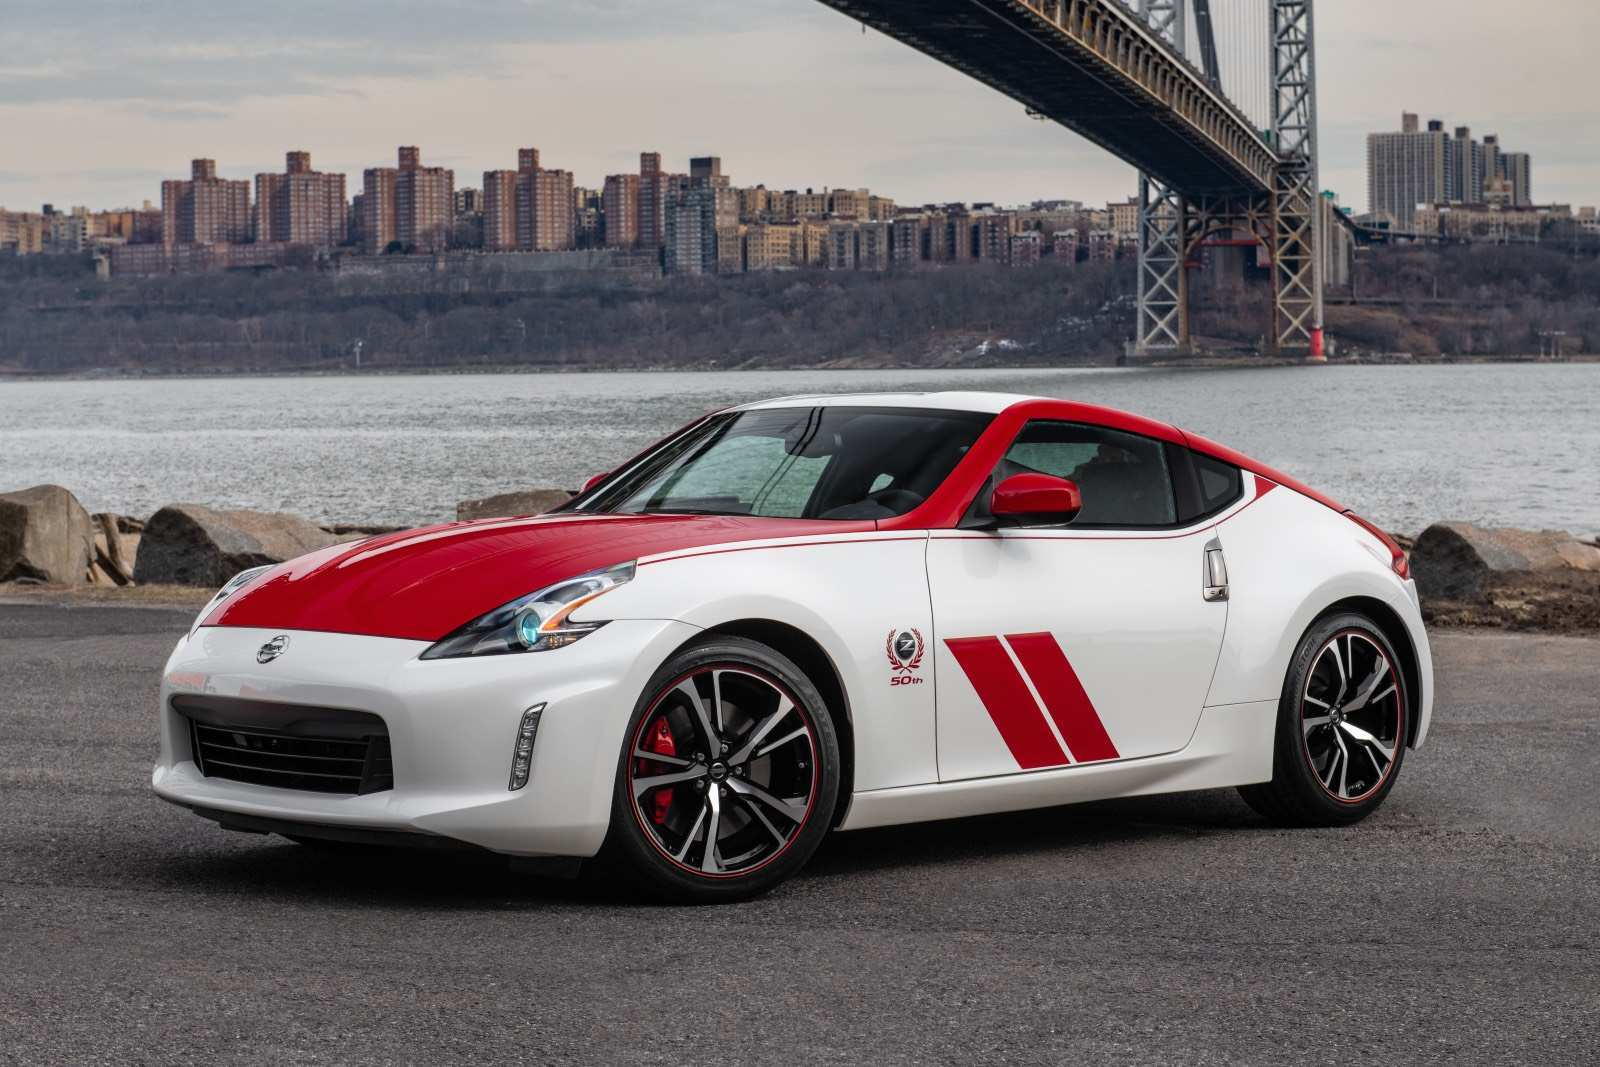 24 New 2020 Nissan Z Car Photos